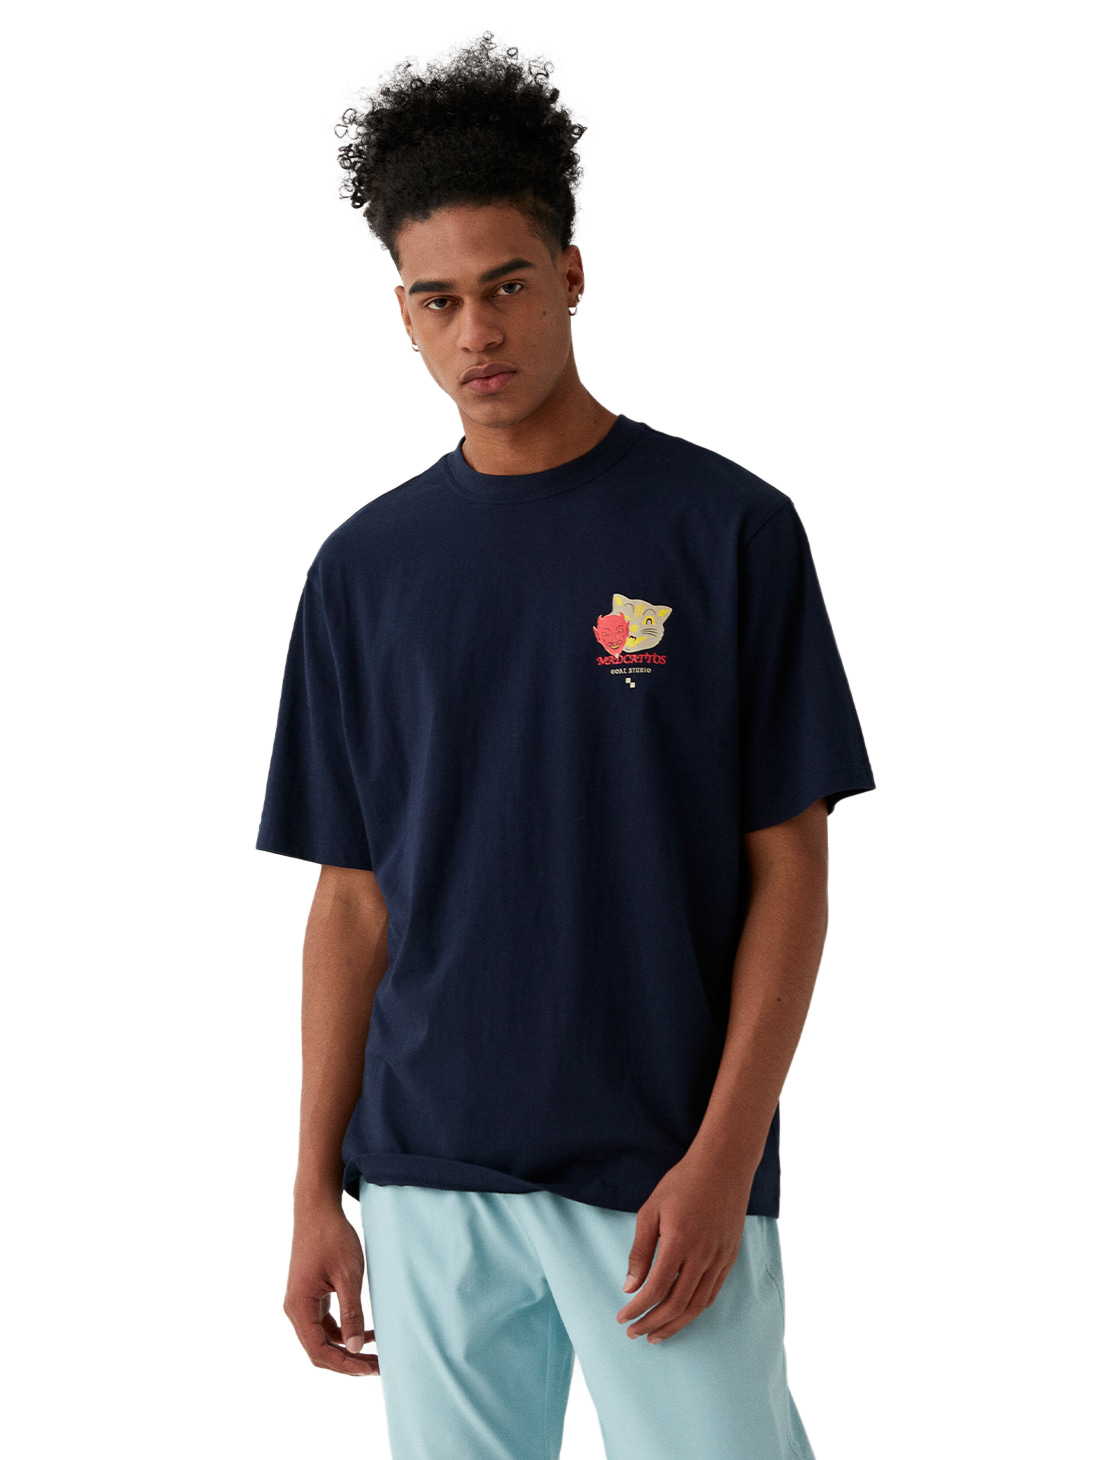 MC MASK GRAPHIC TEE - NAVY